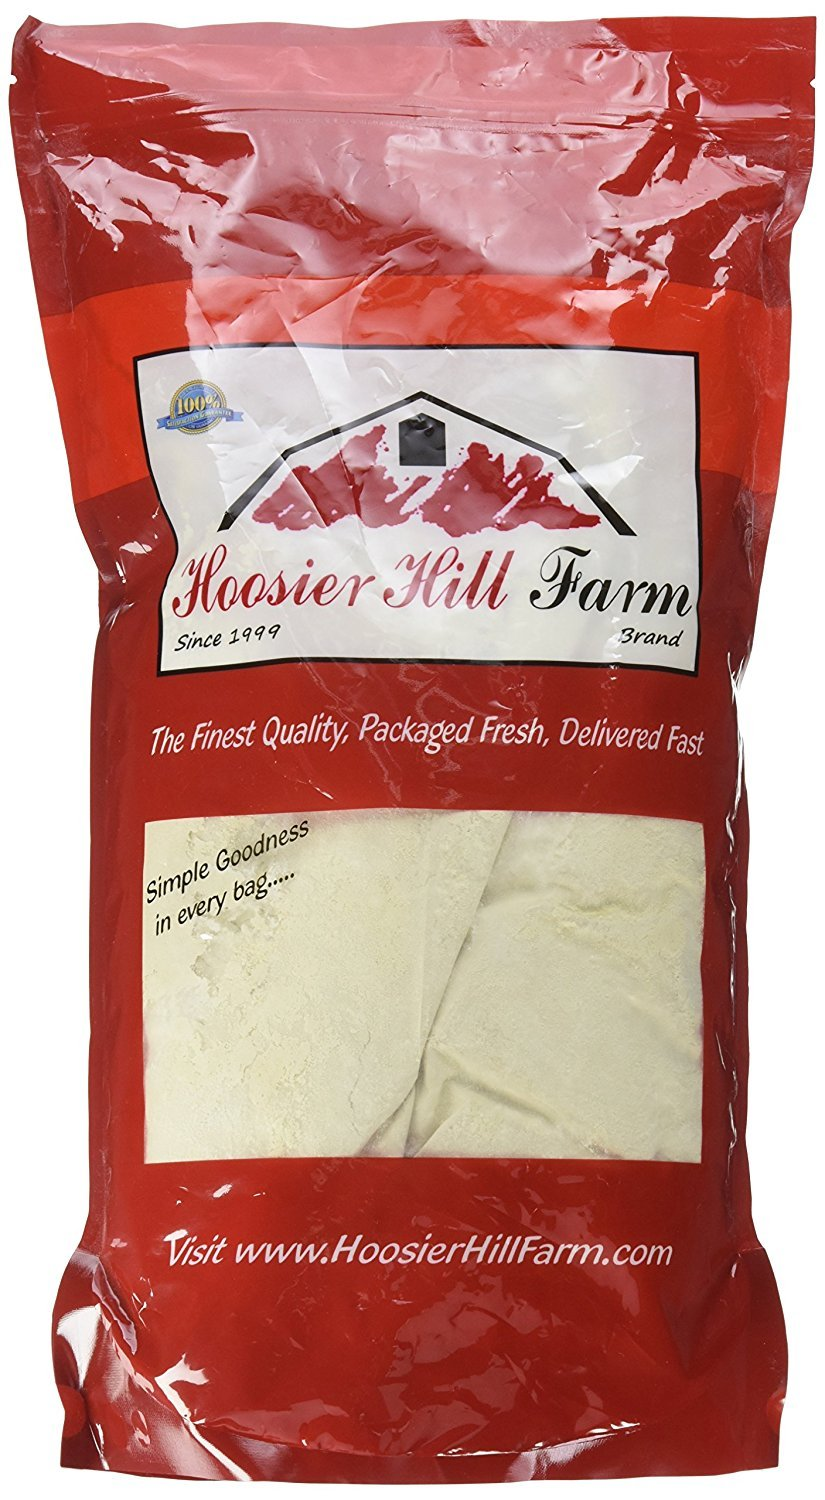 Hoosier Hill Farm Vital Wheat Gluten, High in Protein, NON-GMO 4 lbs by Hoosier Hill Farm